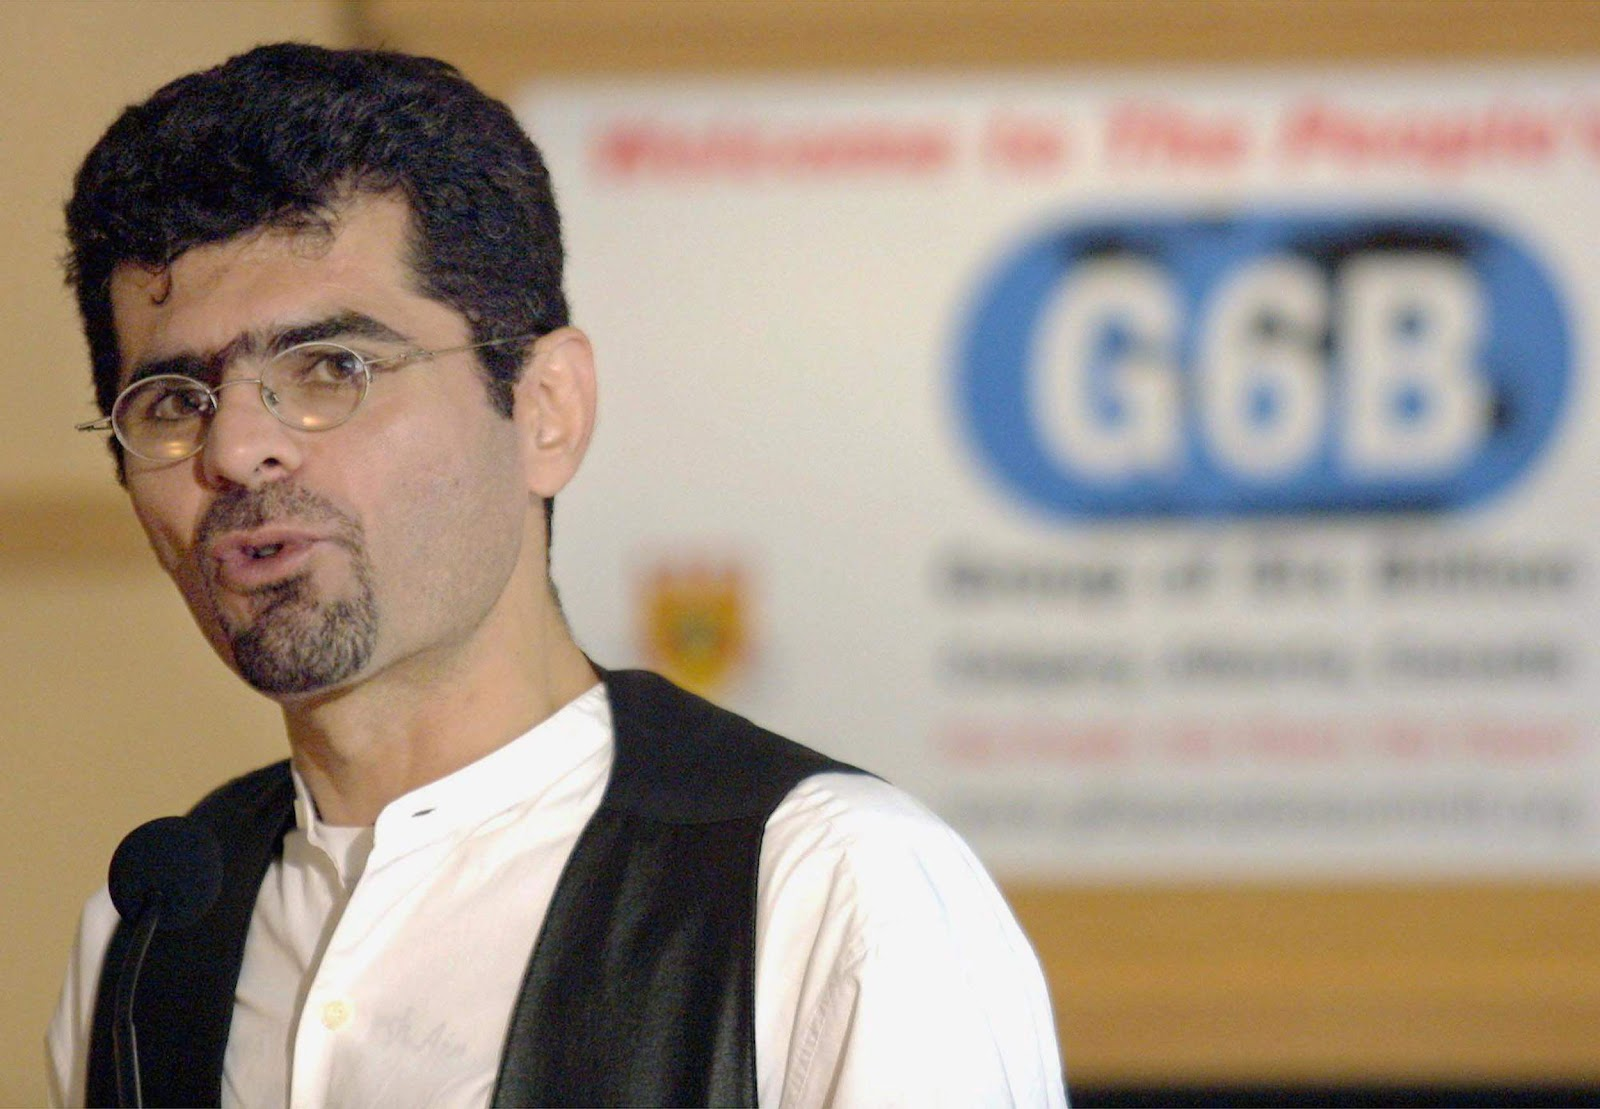 Saren Azer shown in Calgary on June 21, 2002 (Jeff McIntosh / The Canadian Press)